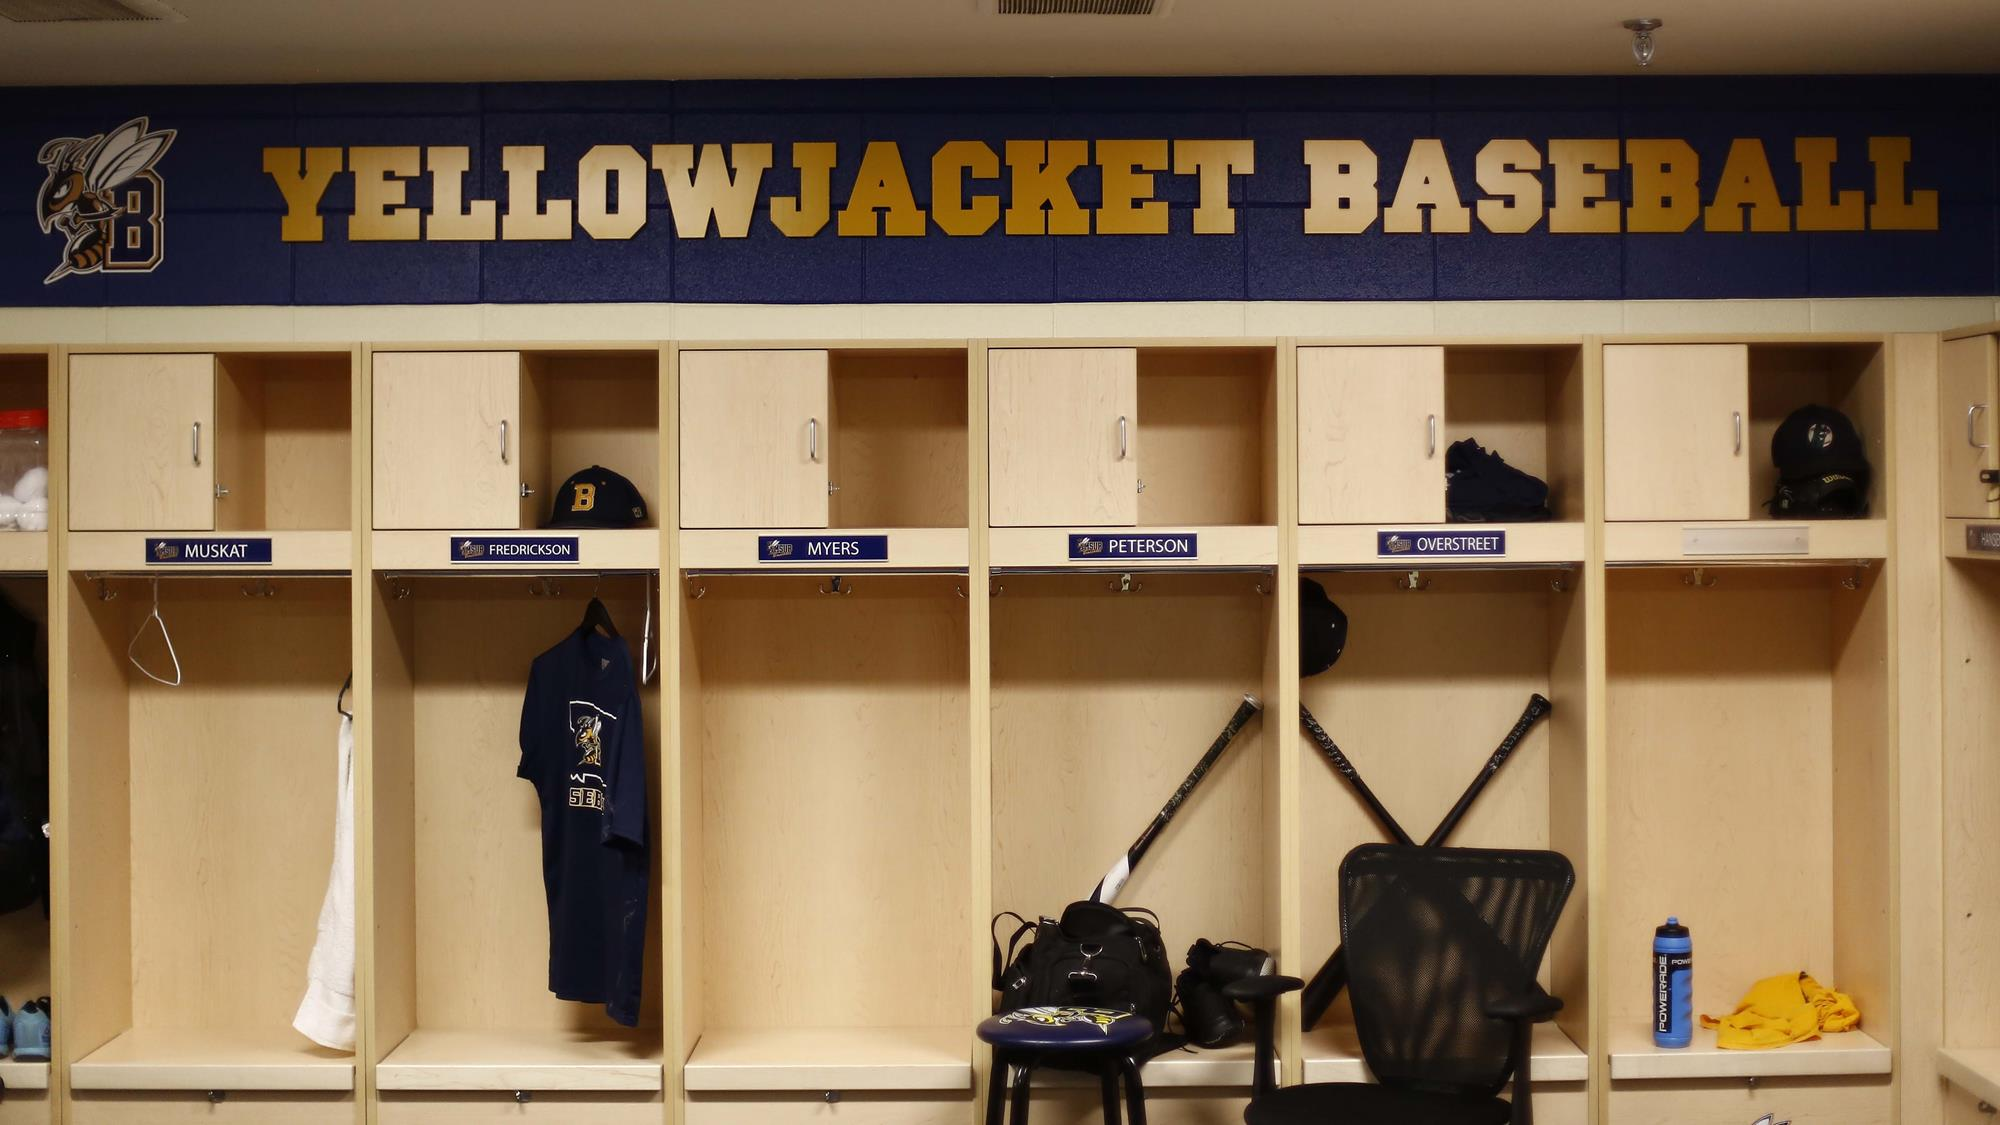 Inside The Yellowjacket Baseball Locker Room Renovation Project